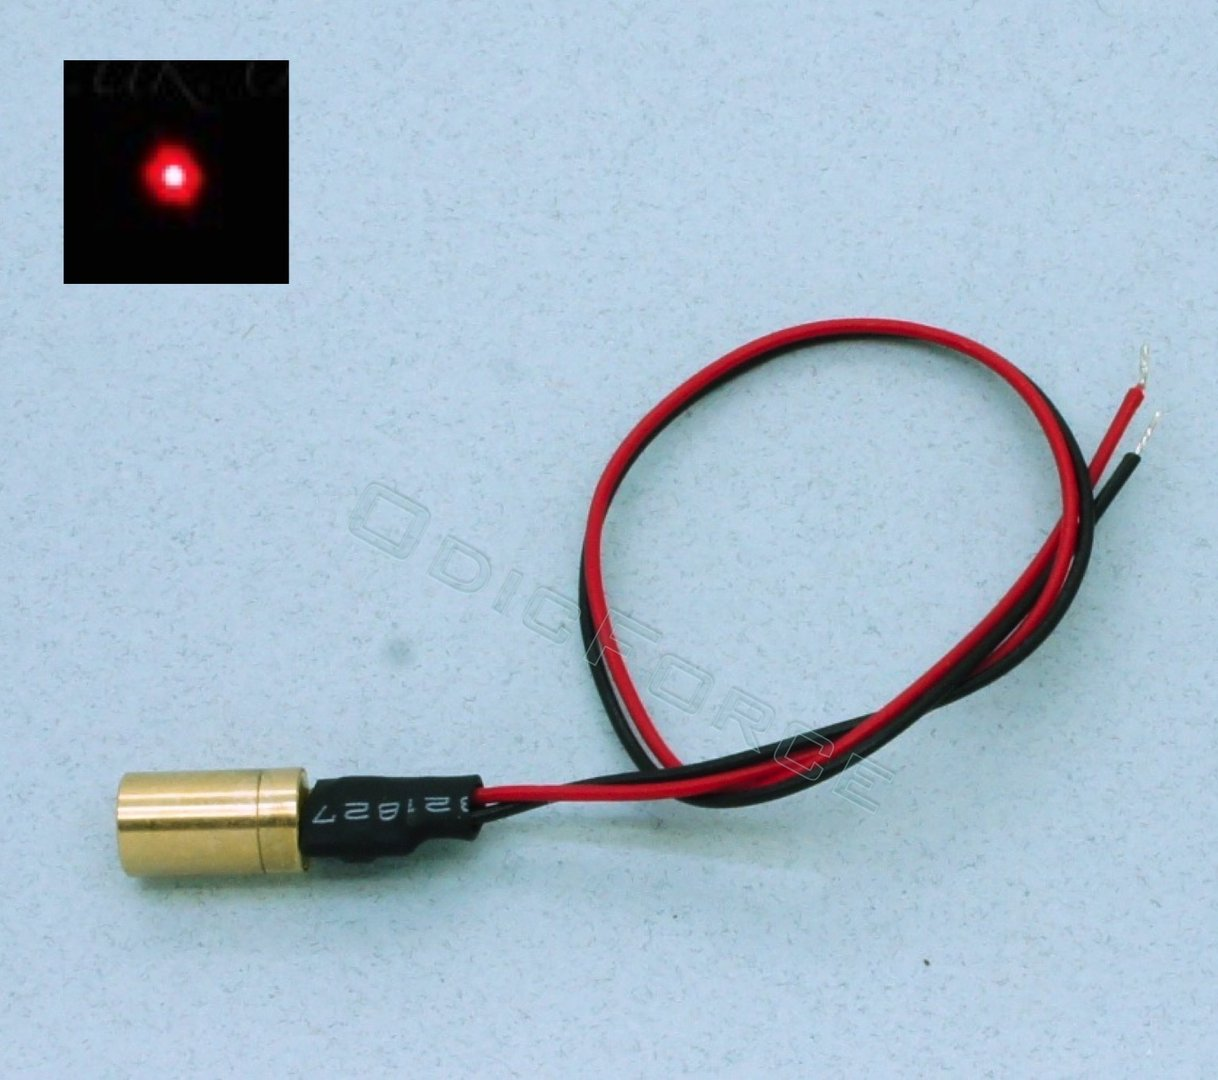 3mW Red (650nm) Miniature Focusing Dot Laser Module (6.0mm) Class 3R